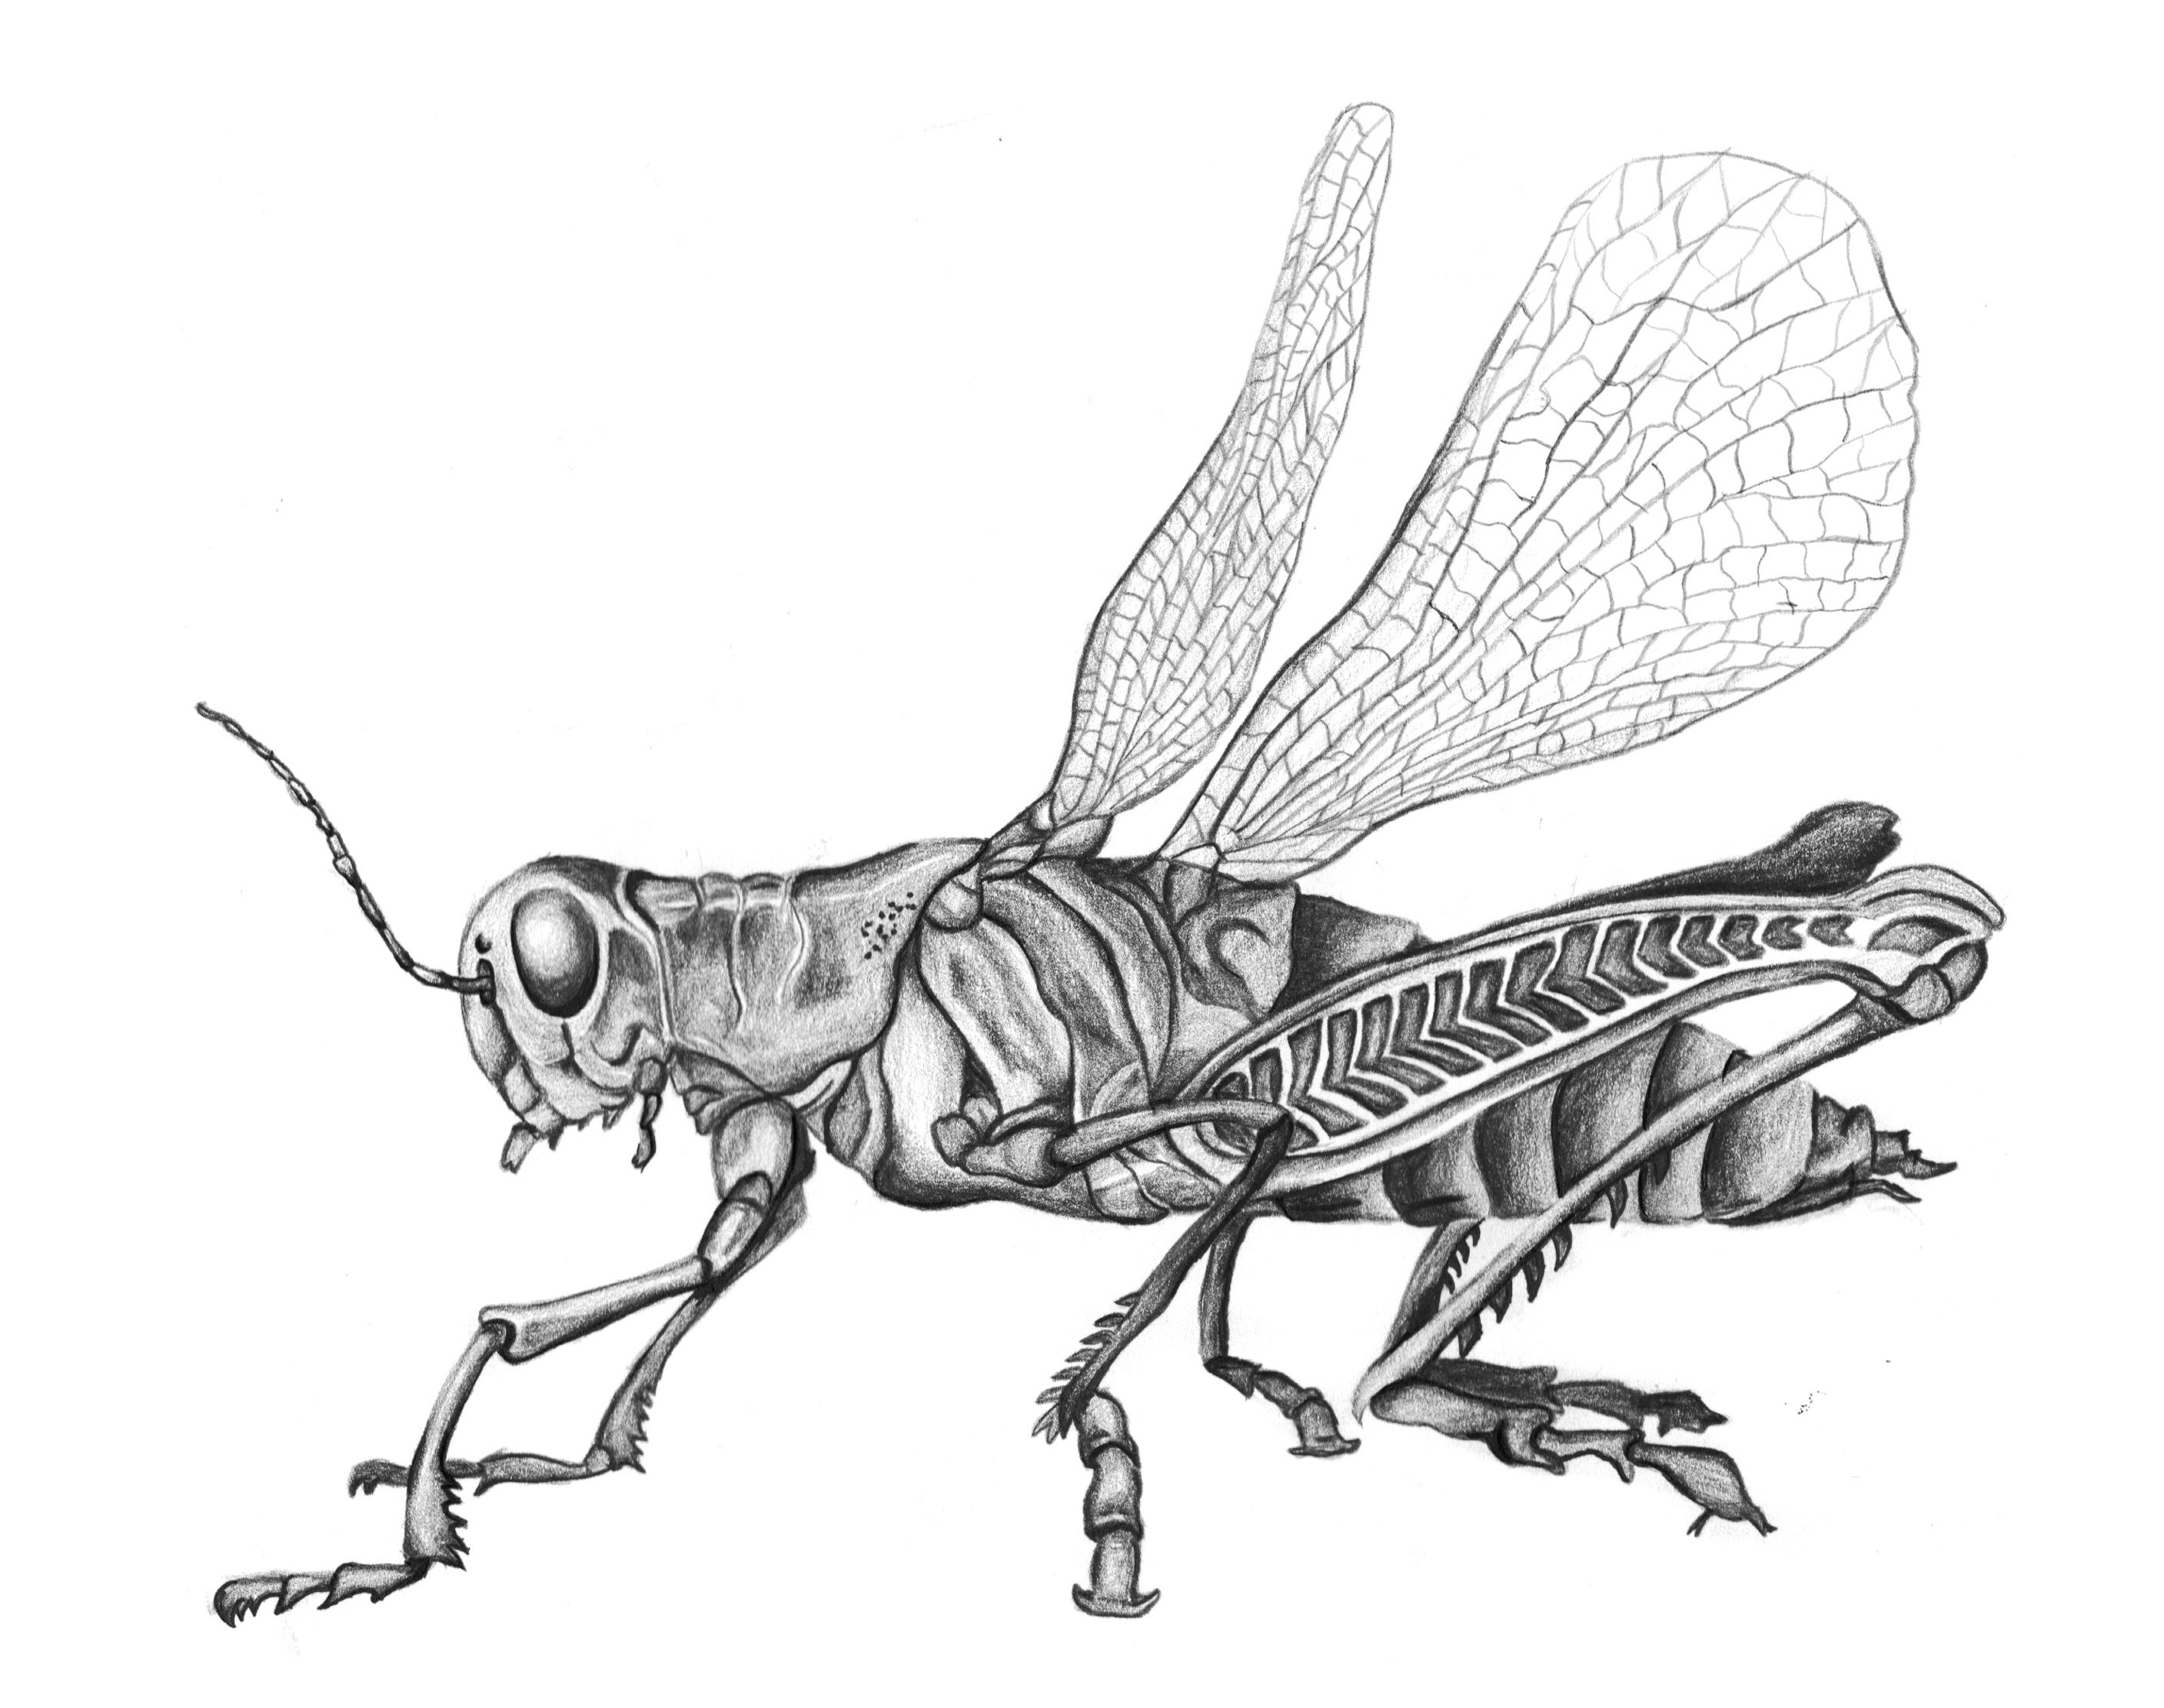 grasshopper pencil drawing black and white insect sketch | Drawings ...